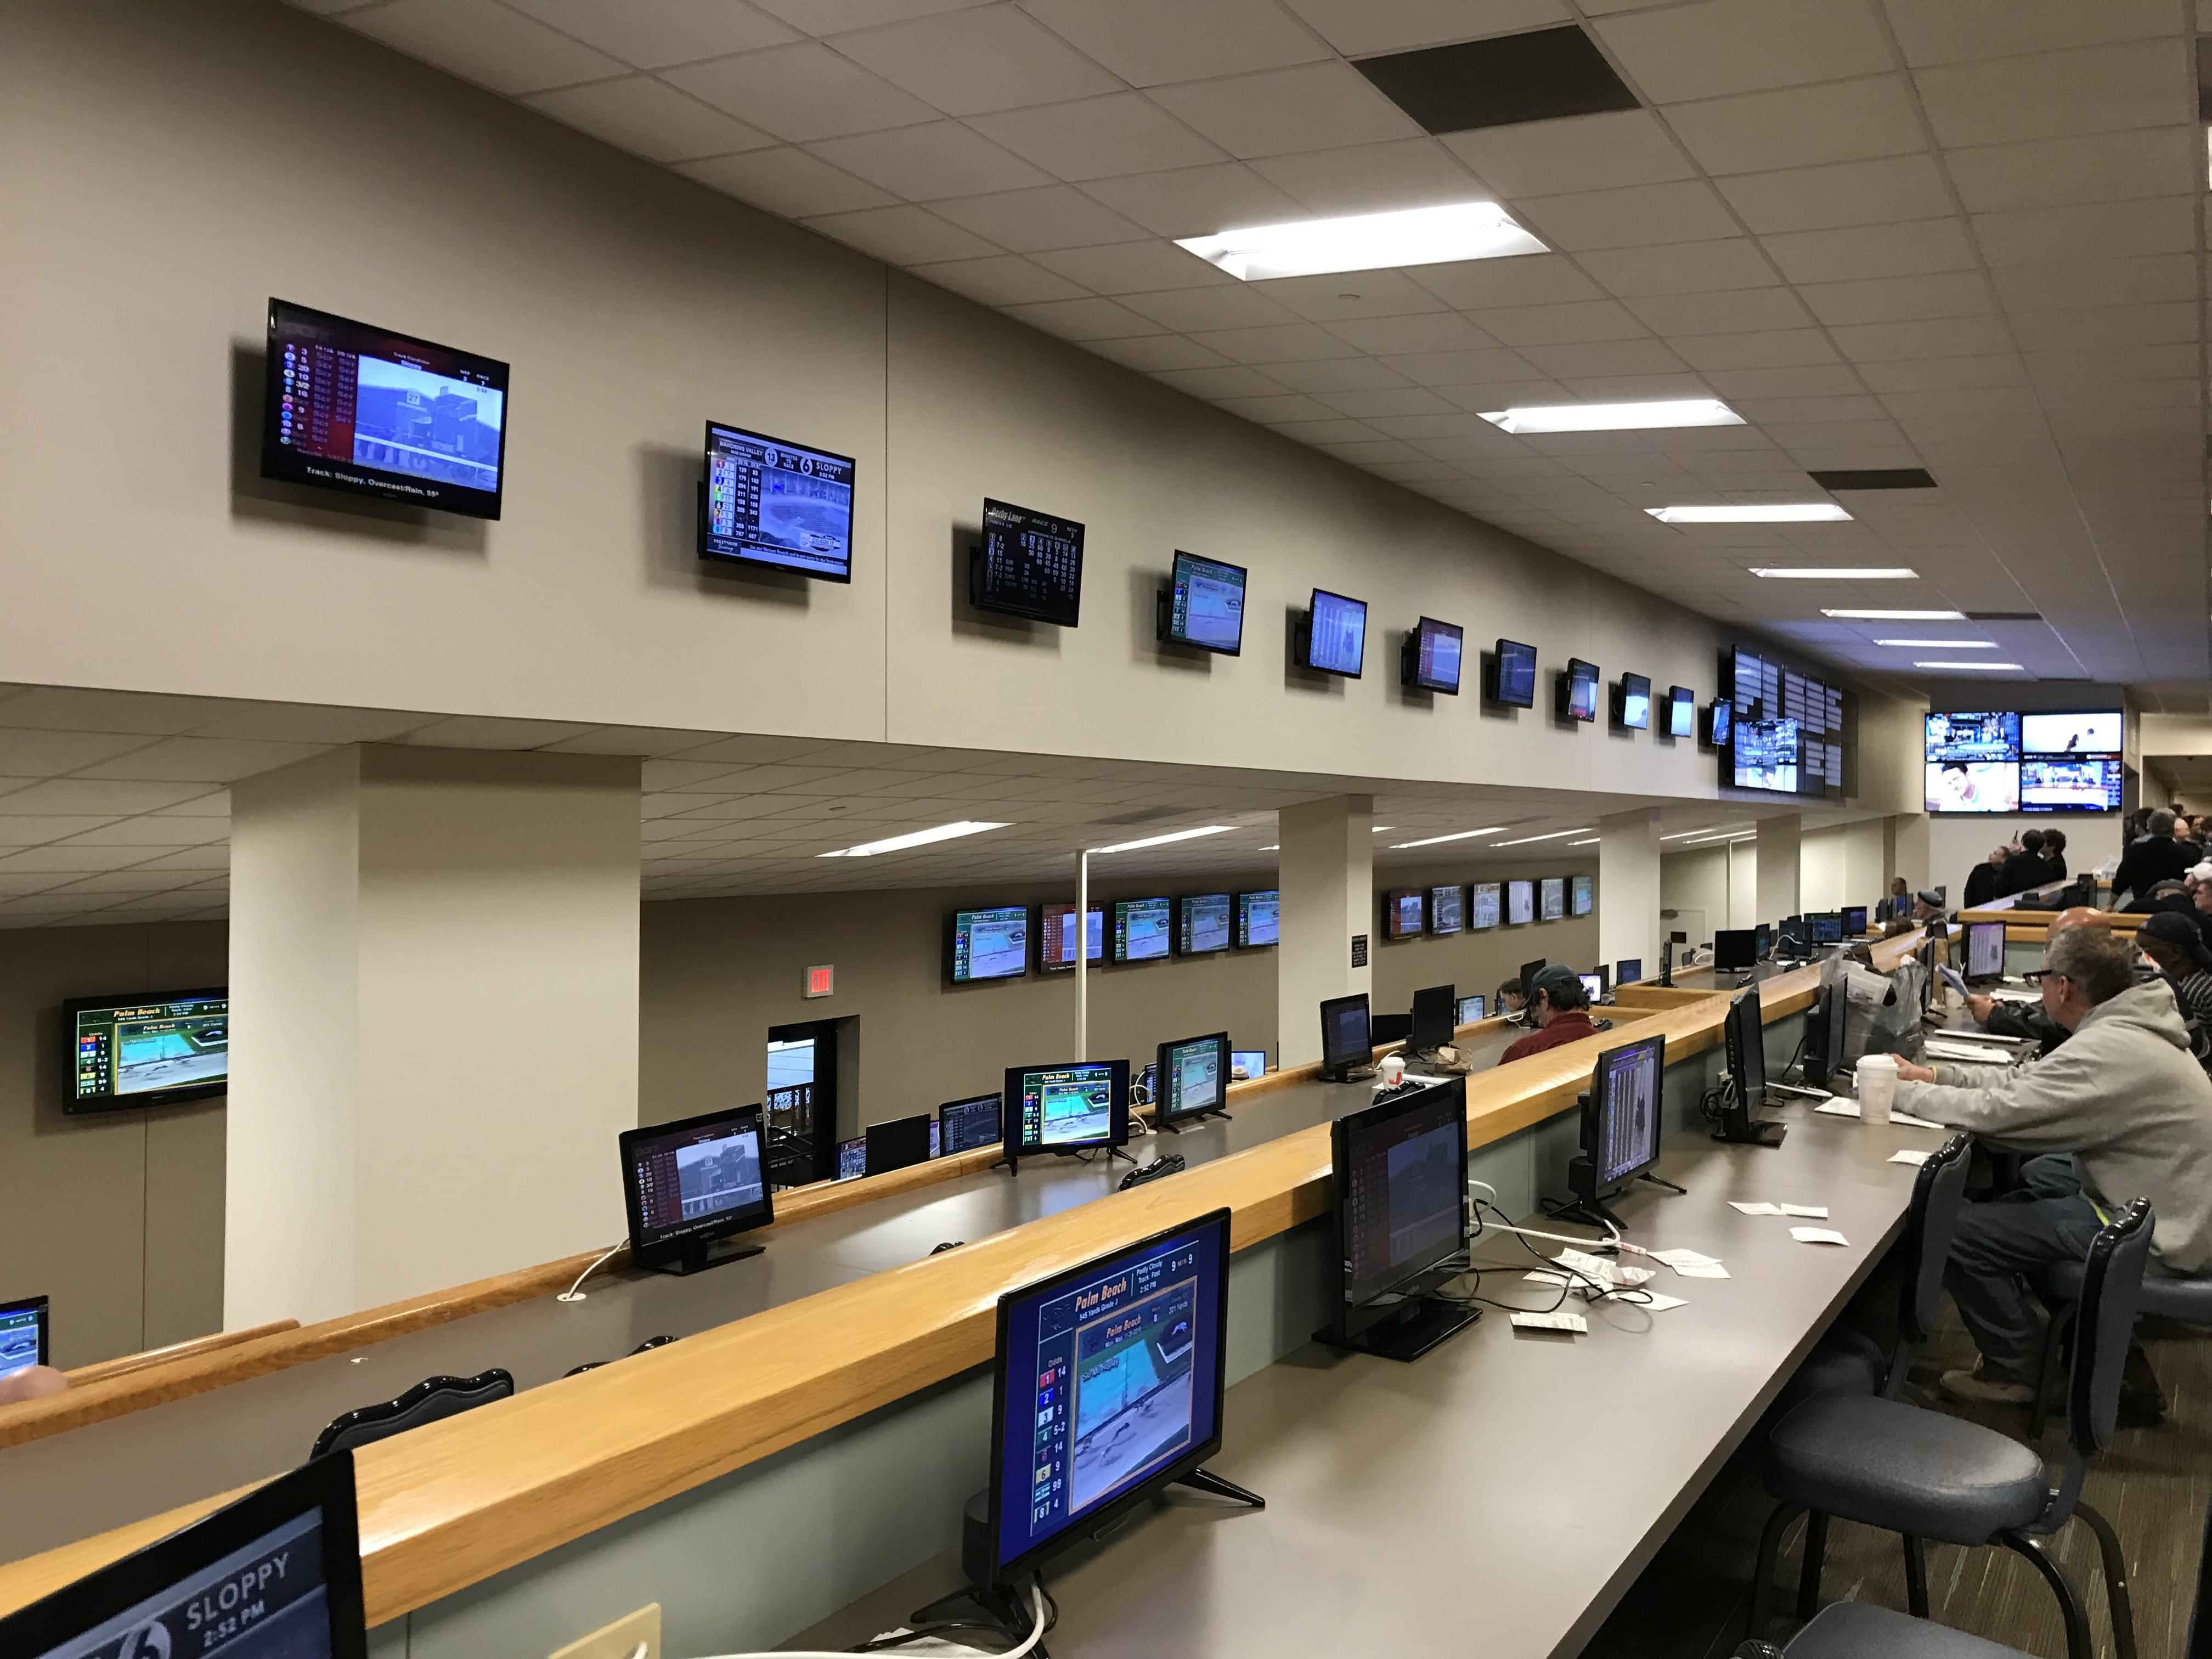 Port city daily sports betting minnesota sentencing guidelines aiding and abetting law